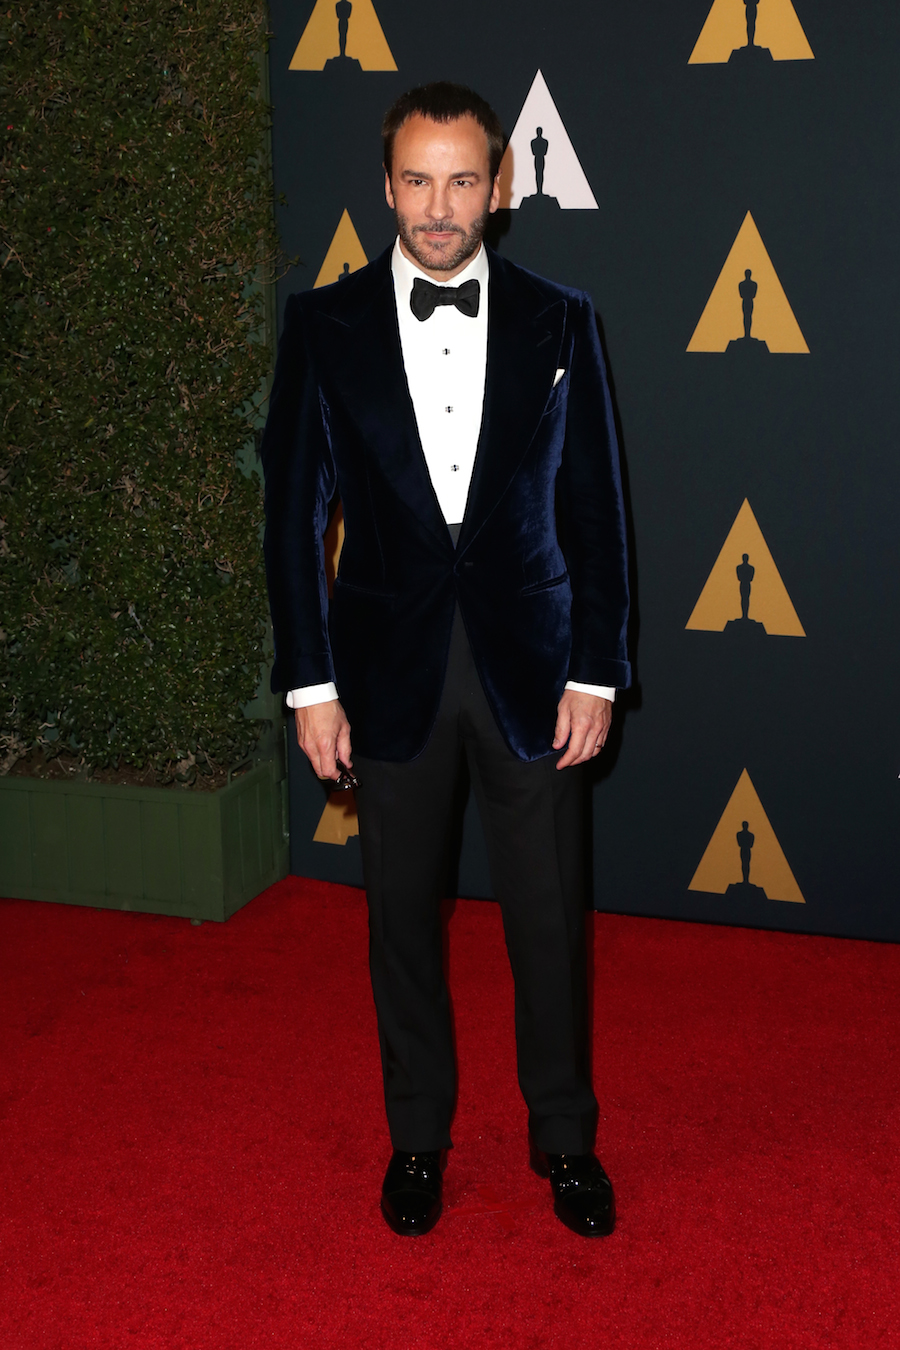 Tom Ford en la ceremonia de los premios Oscar en 2016 (Getty Images)